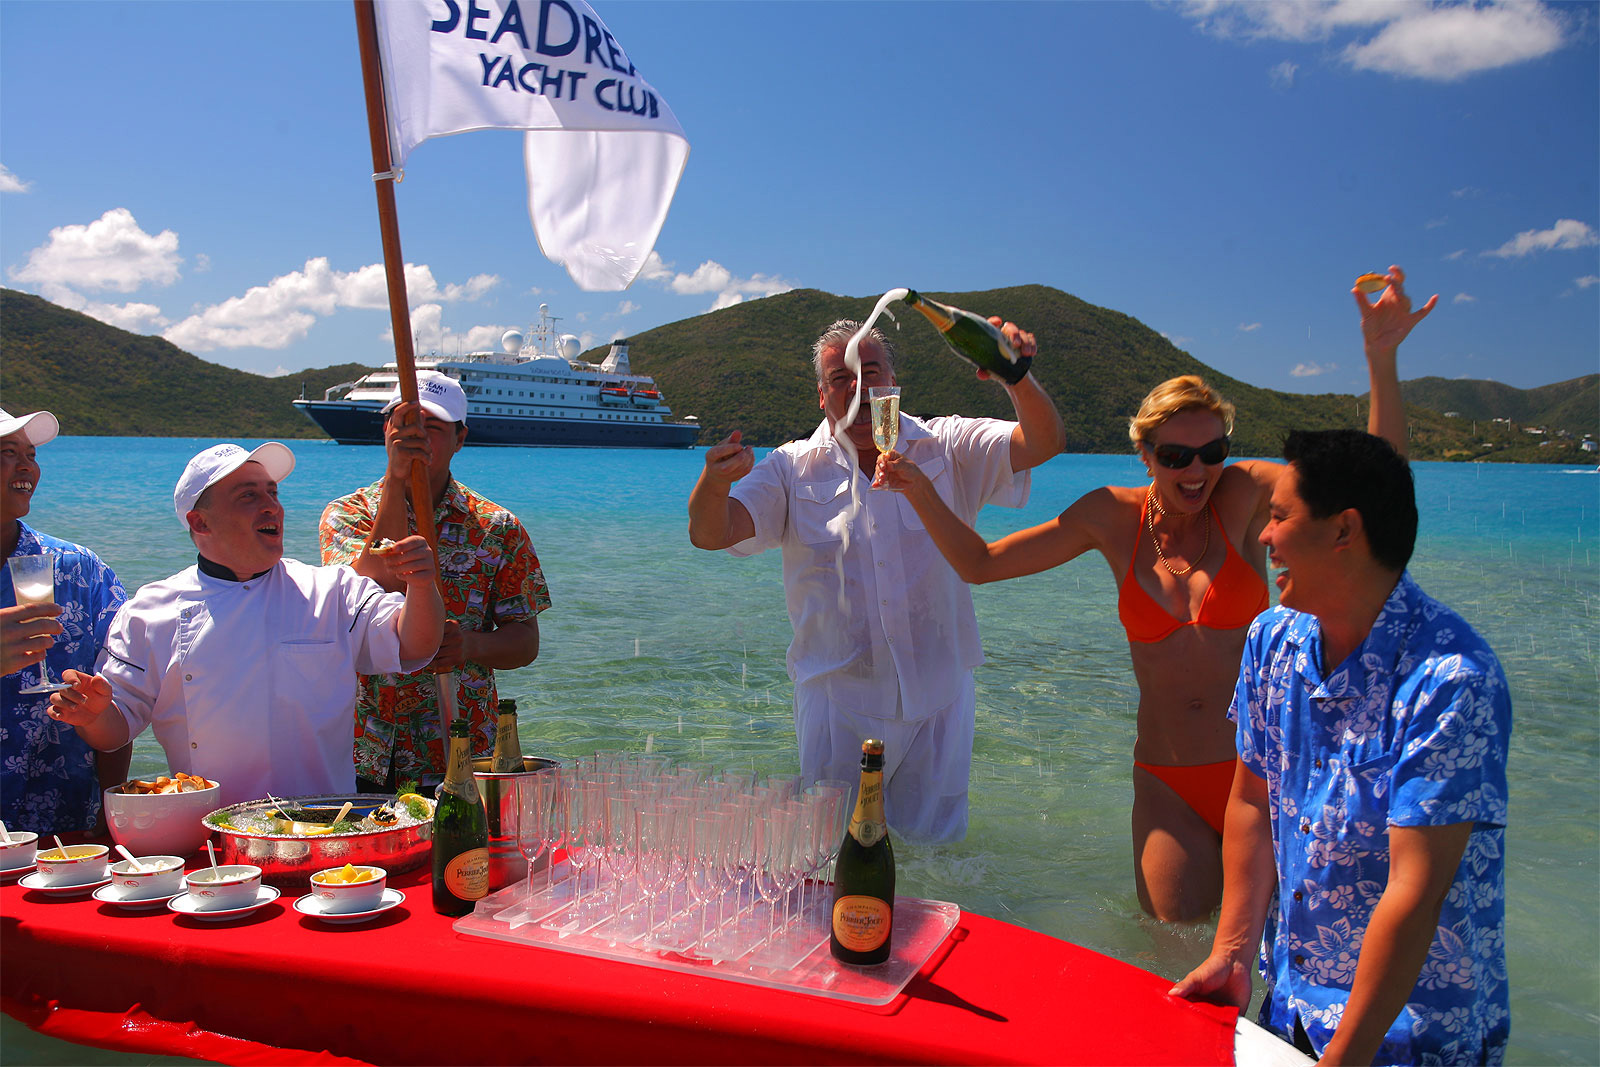 SeaDream Yacht Club &#8211; It&#8217;s Yachting, not Cruising!